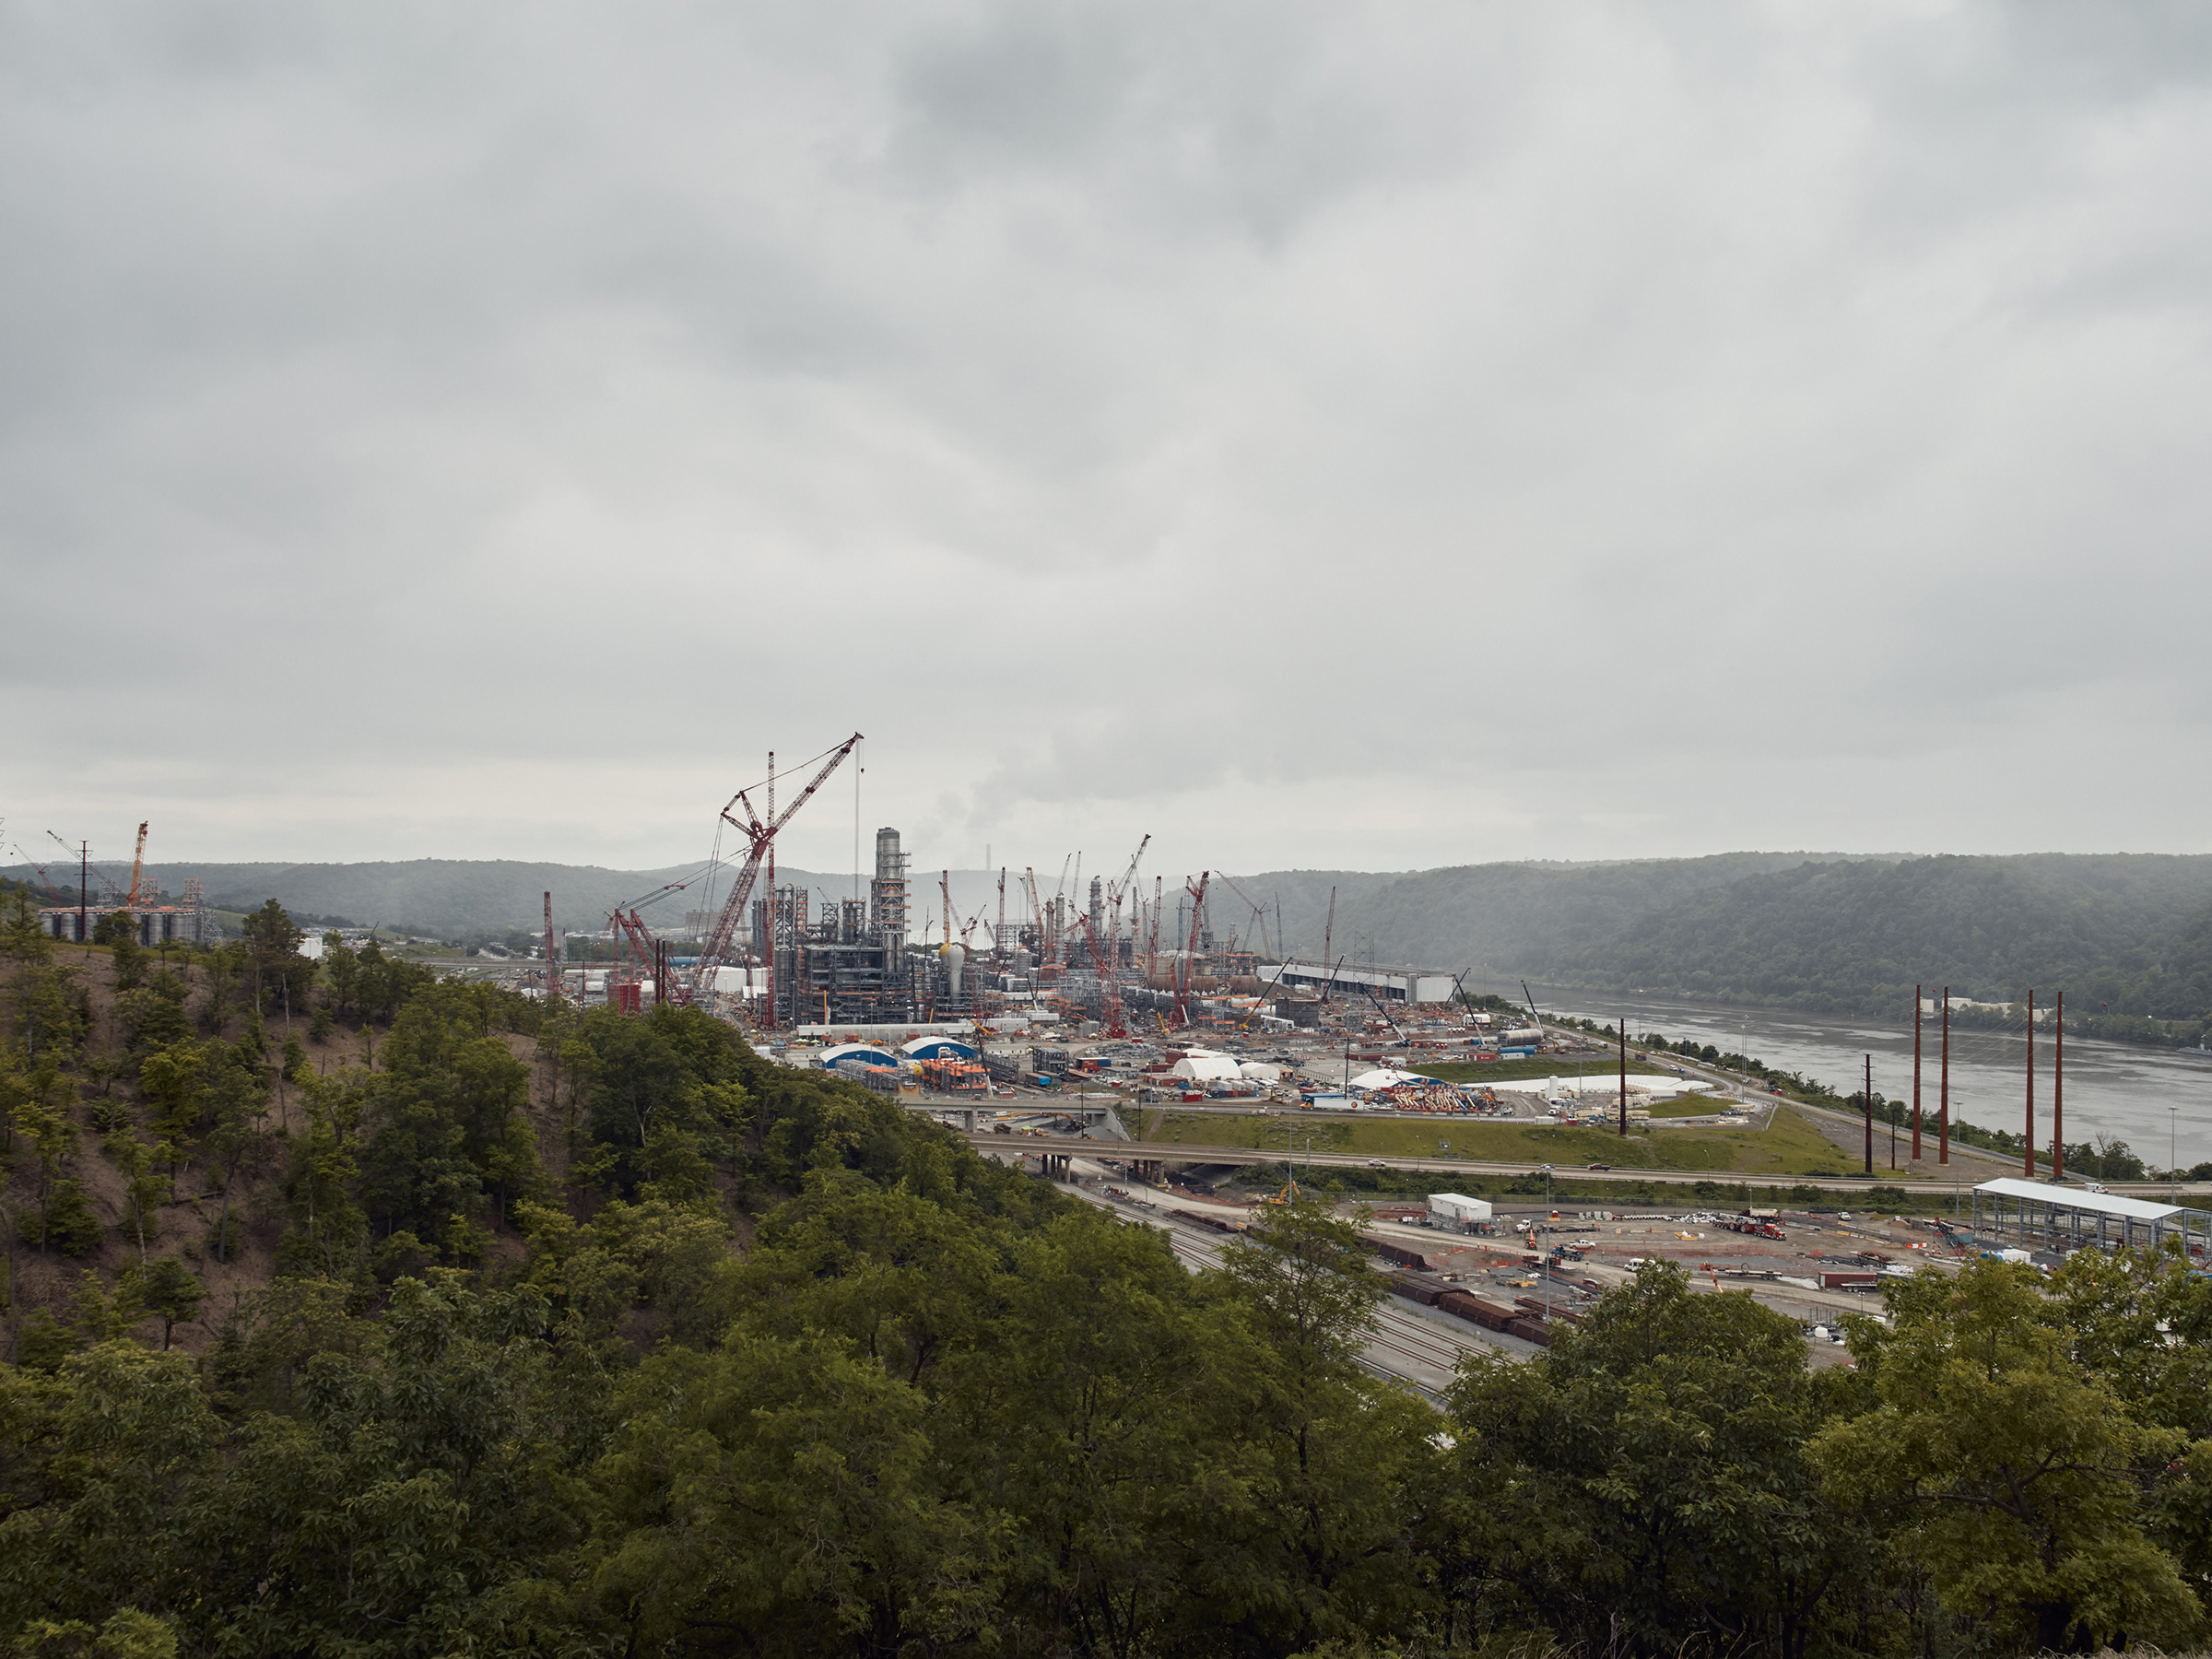 A $6billion Shell plastics facility is currently under construction outside of Pittsburgh